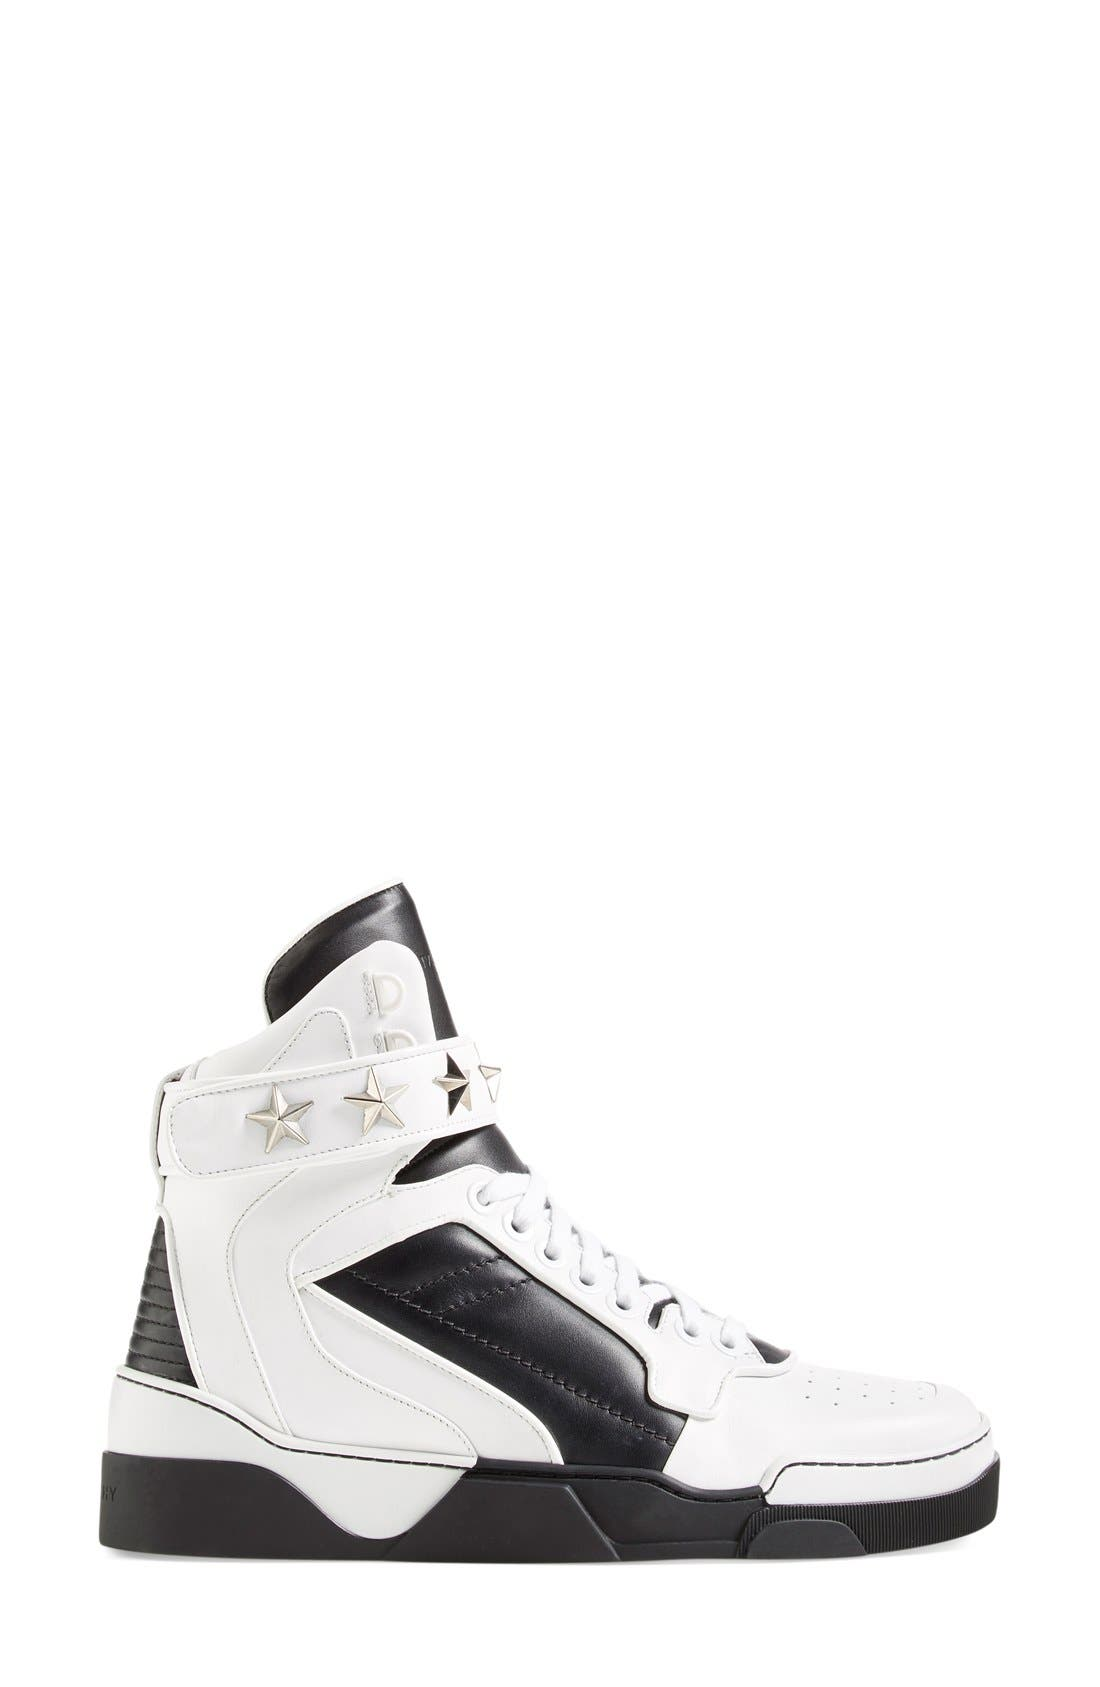 'Tyson' High Top Sneaker,                             Alternate thumbnail 5, color,